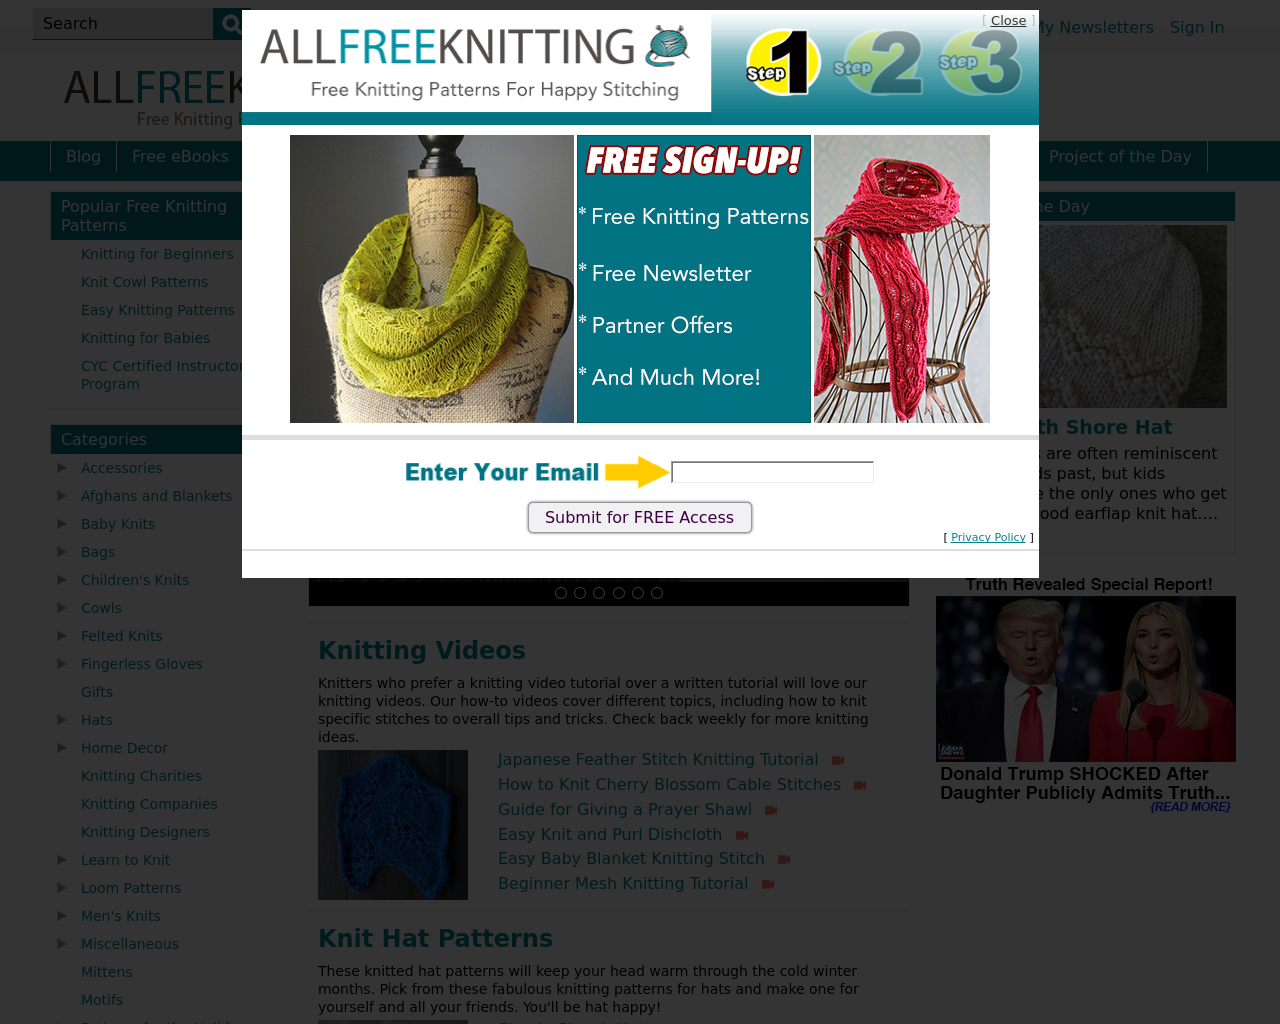 All-Free-Knitting-Advertising-Reviews-Pricing